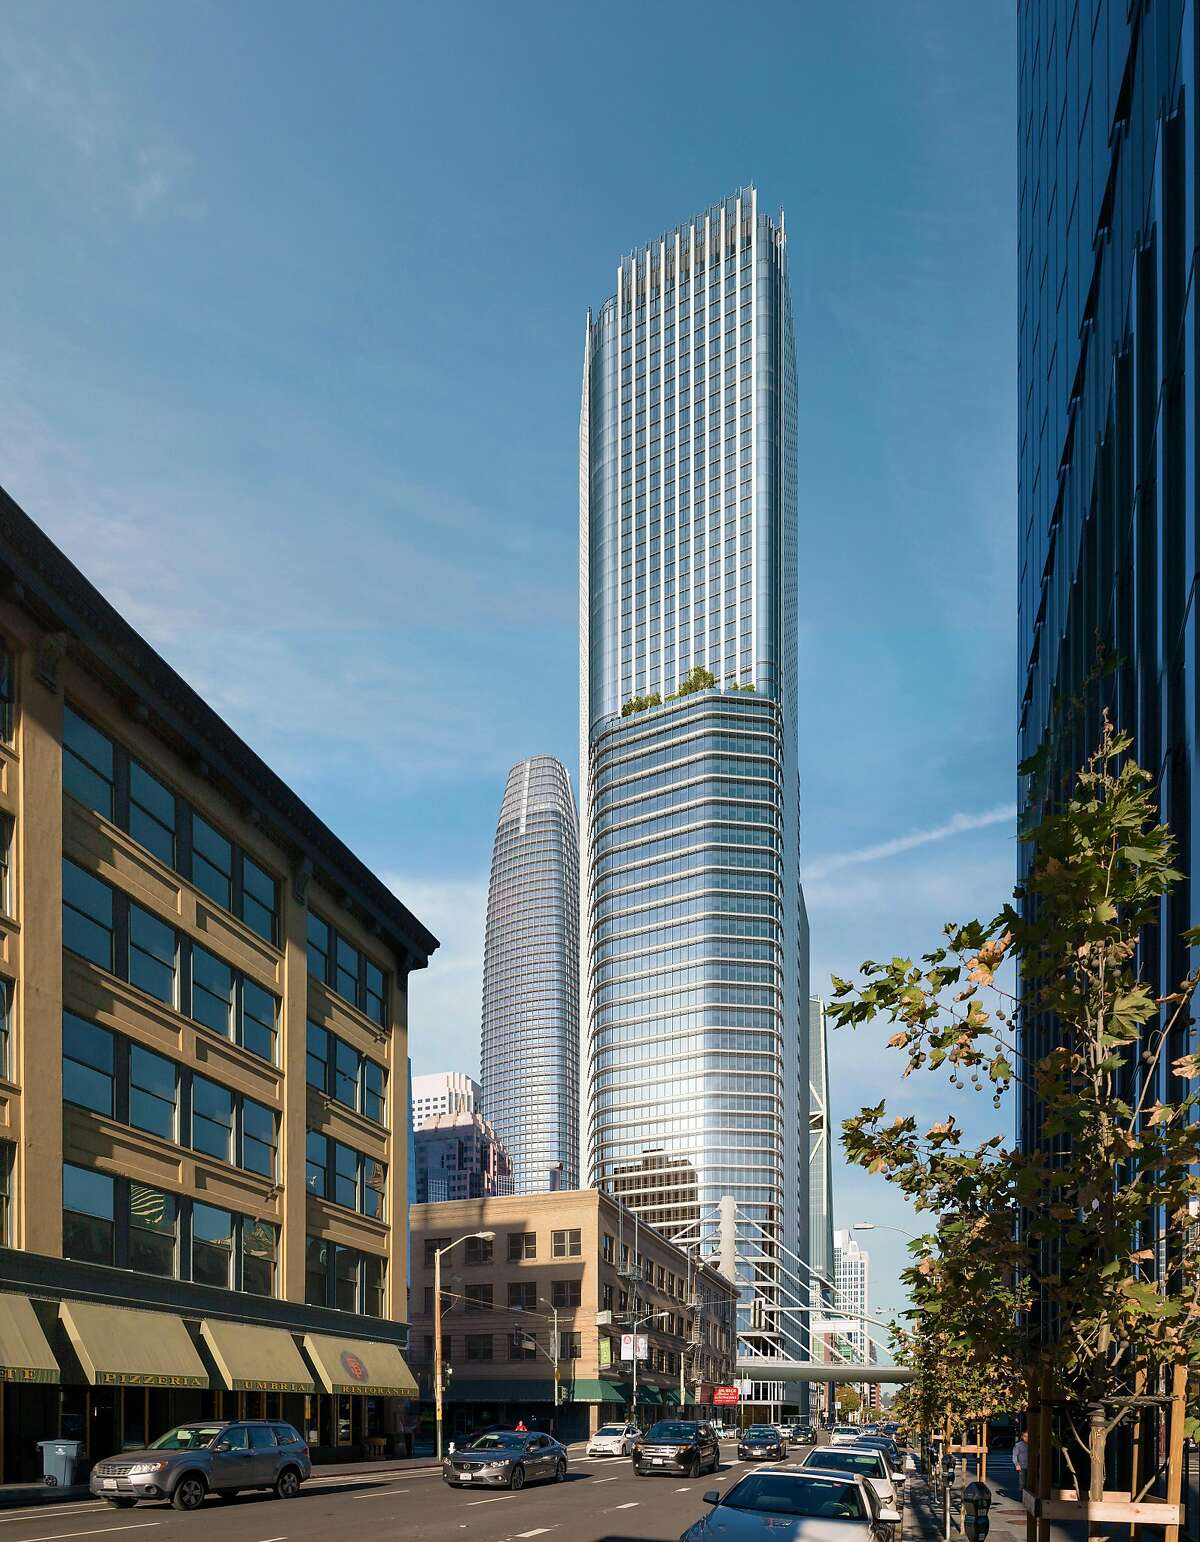 At 800 feet, the 62-story tower proposed at 542-550 Howard Street would be one of San Francisco's �tallest skyscrapers. The design by Pelli Clarke Pelli architects includes shops and restaurants along Natoma Street, an alley running alongside the new Transbay Transit Center.